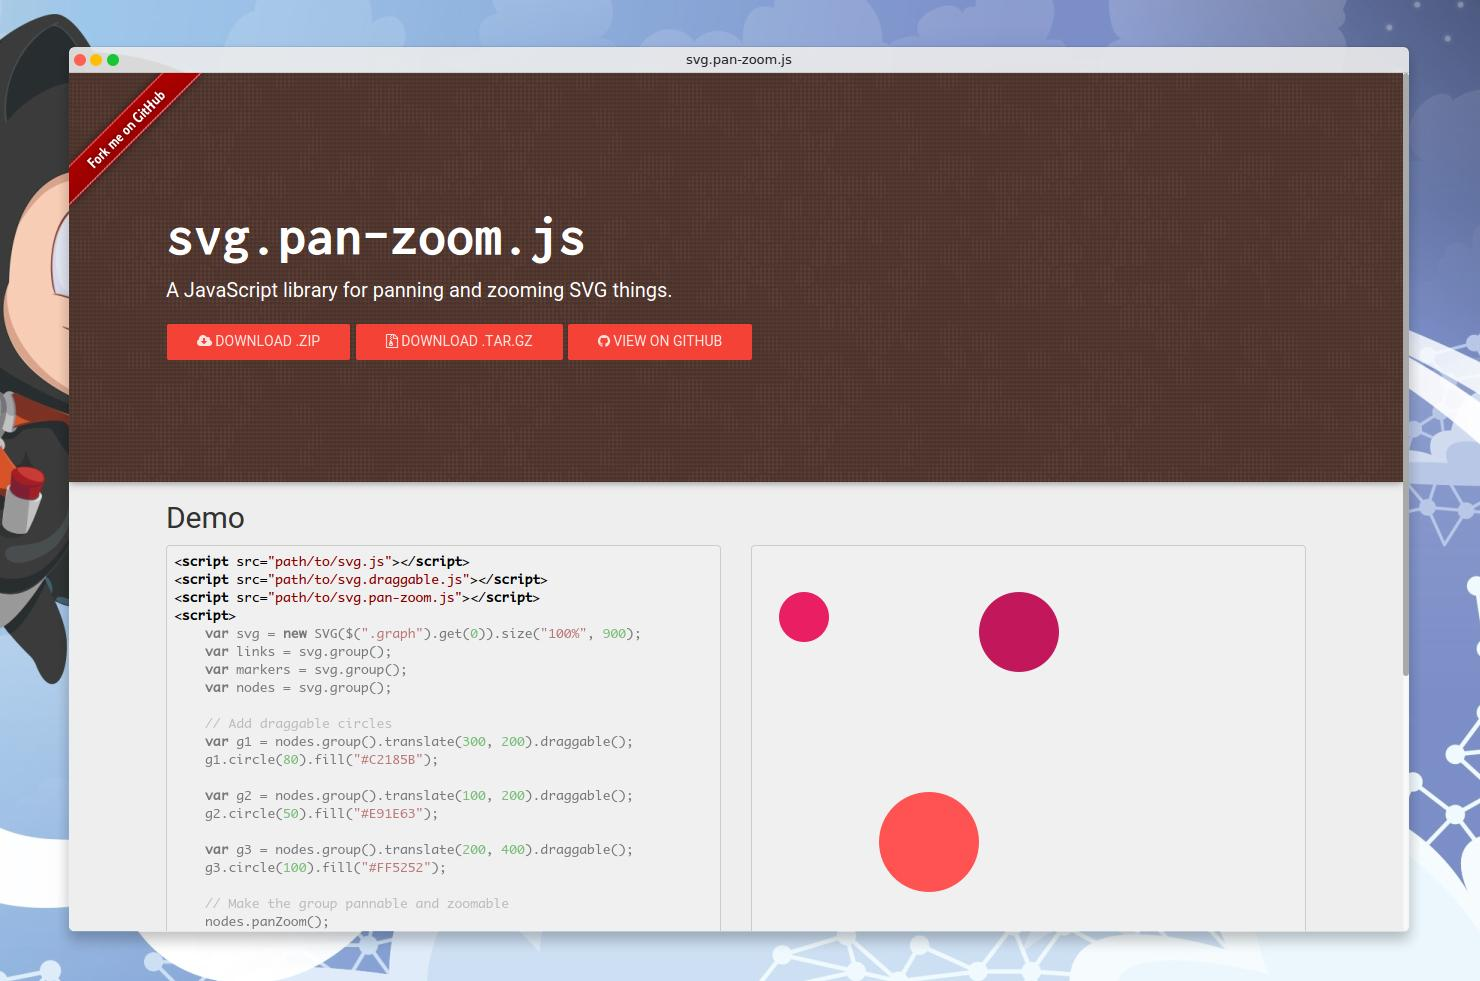 GitHub - jillix/svg pan-zoom js: A JavaScript library for panning